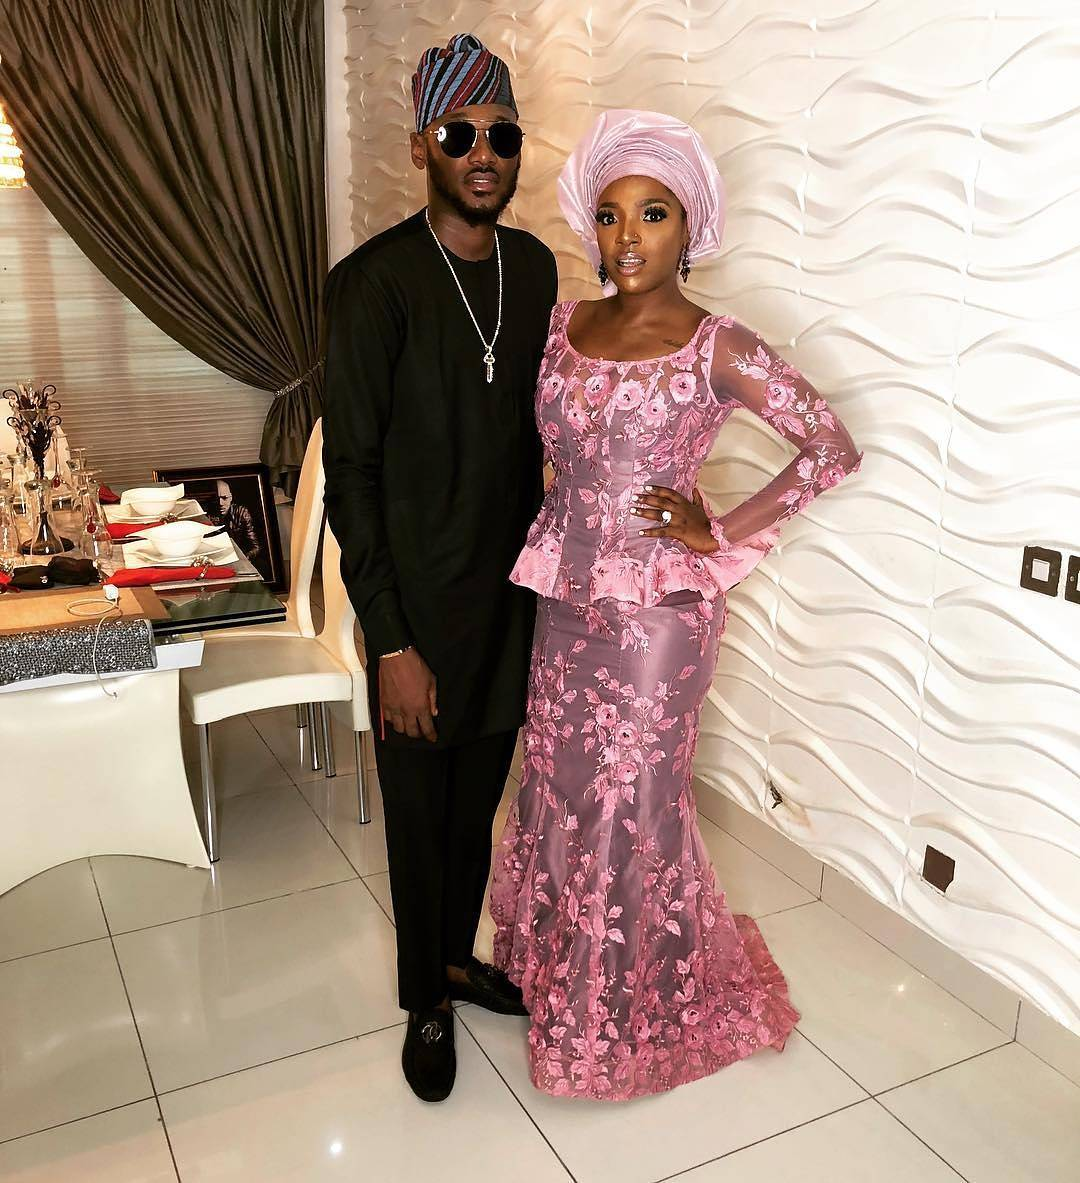 #BAAD2017 Photos from Banky W and Adesua Etomi's traditional wedding